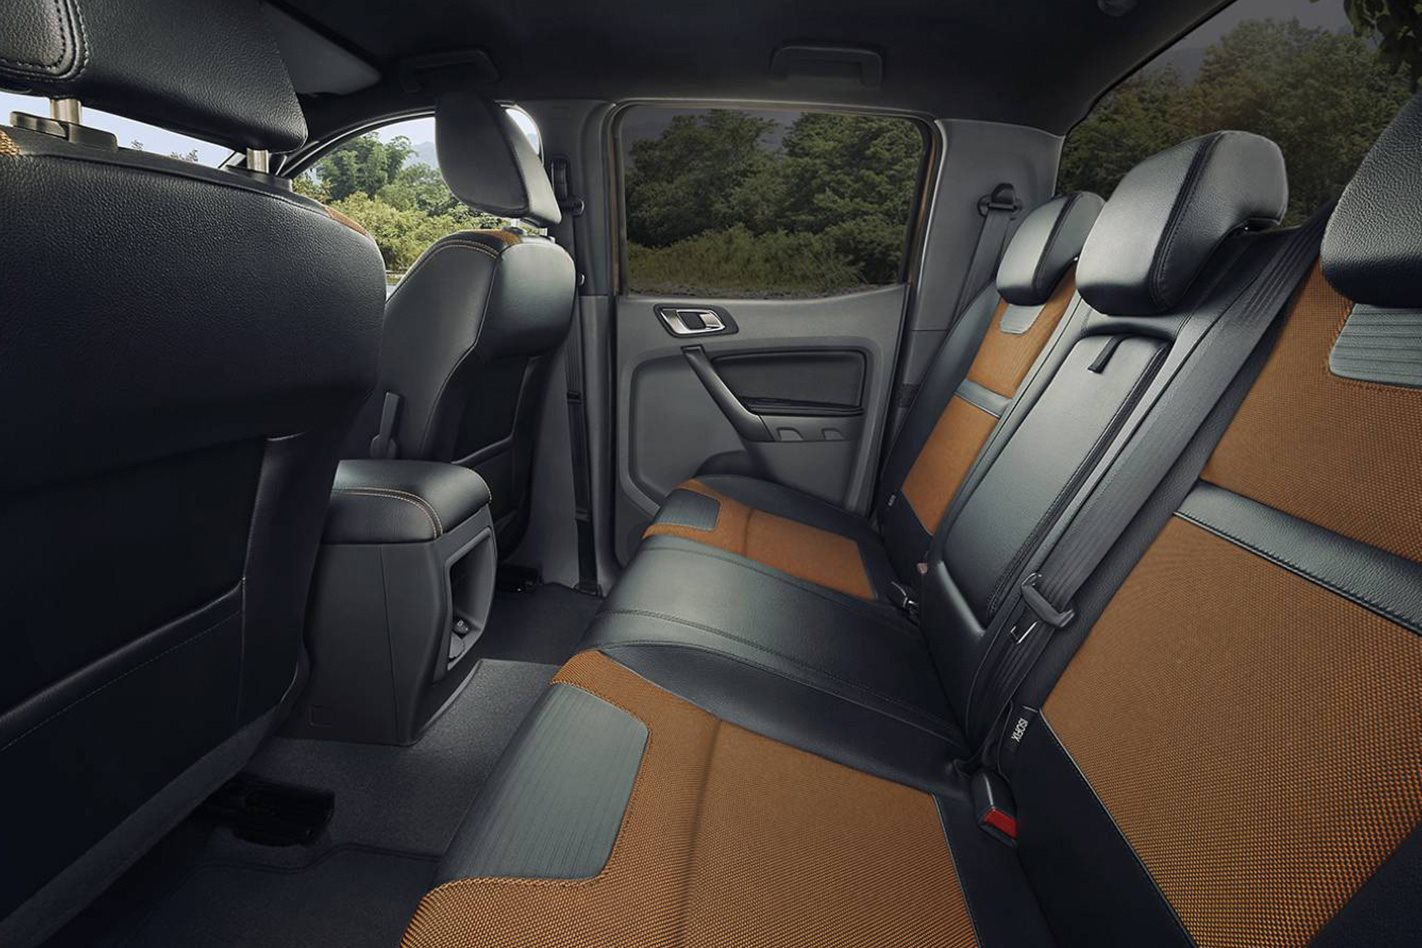 Ford Ranger Interior Back Seats